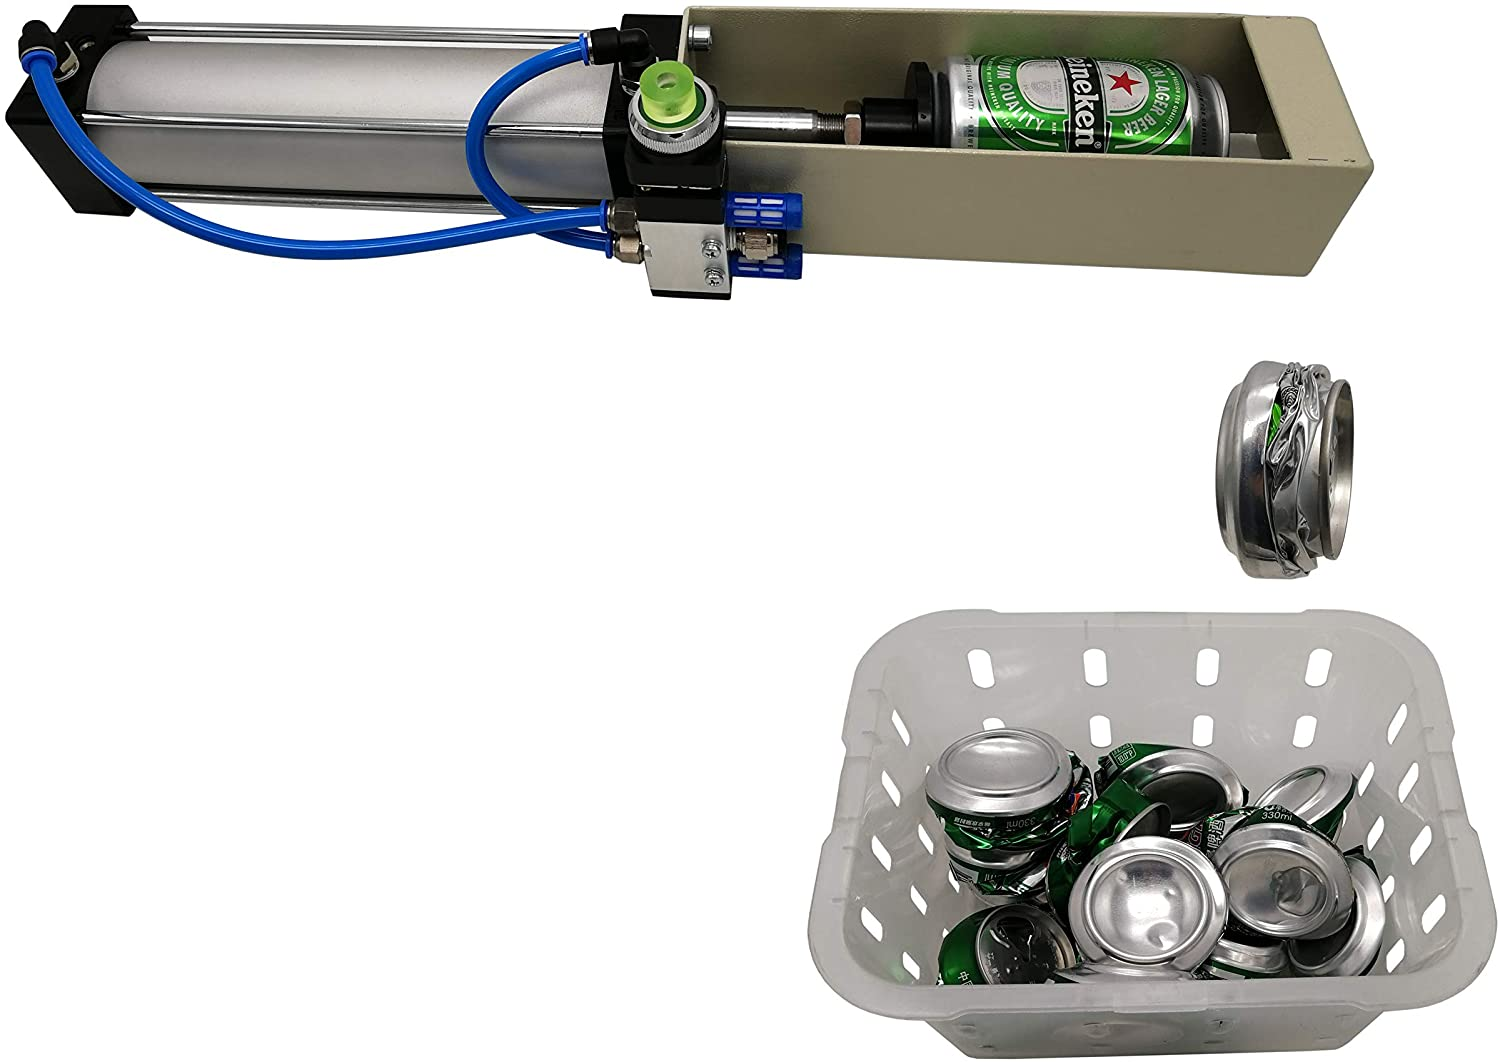 Air Cylinder Can Crusher Heavy Duty Efficient Soda Beer Smasher, Eco-Friendly Recycling Tool for Aluminum Cans